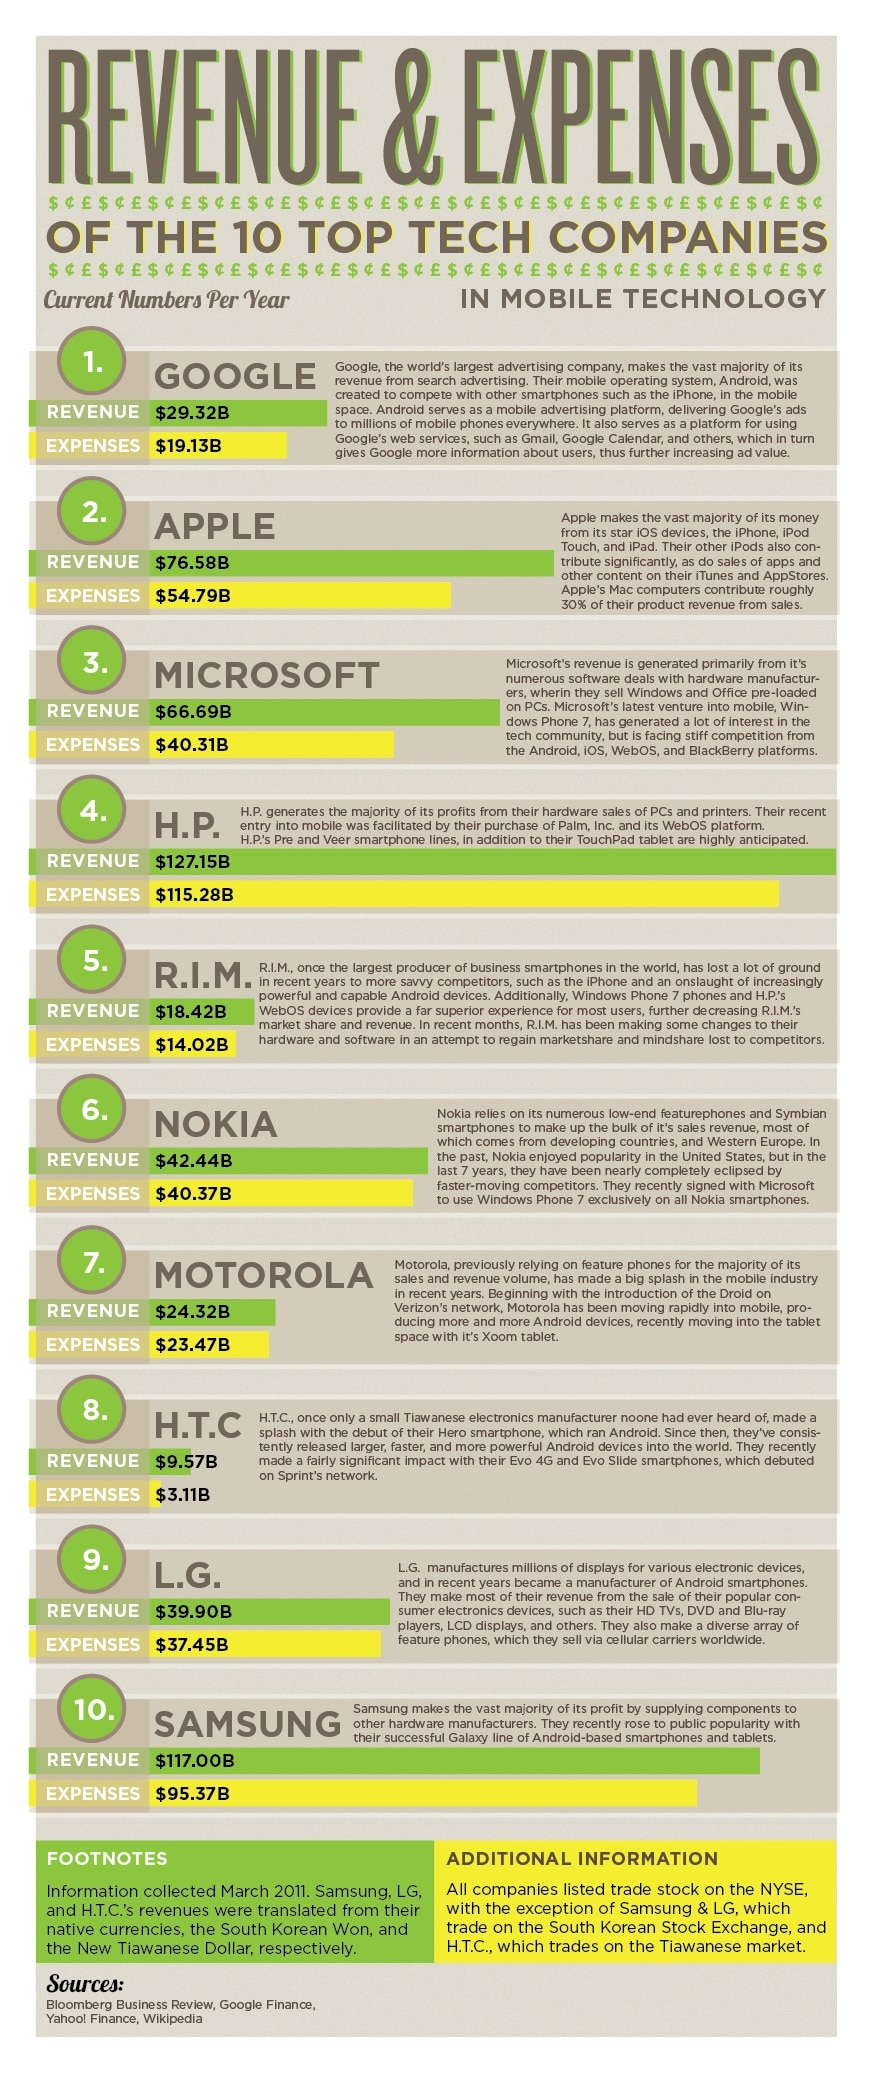 Top 10 Tech Companies: Revenue And Expenses [Infographic]